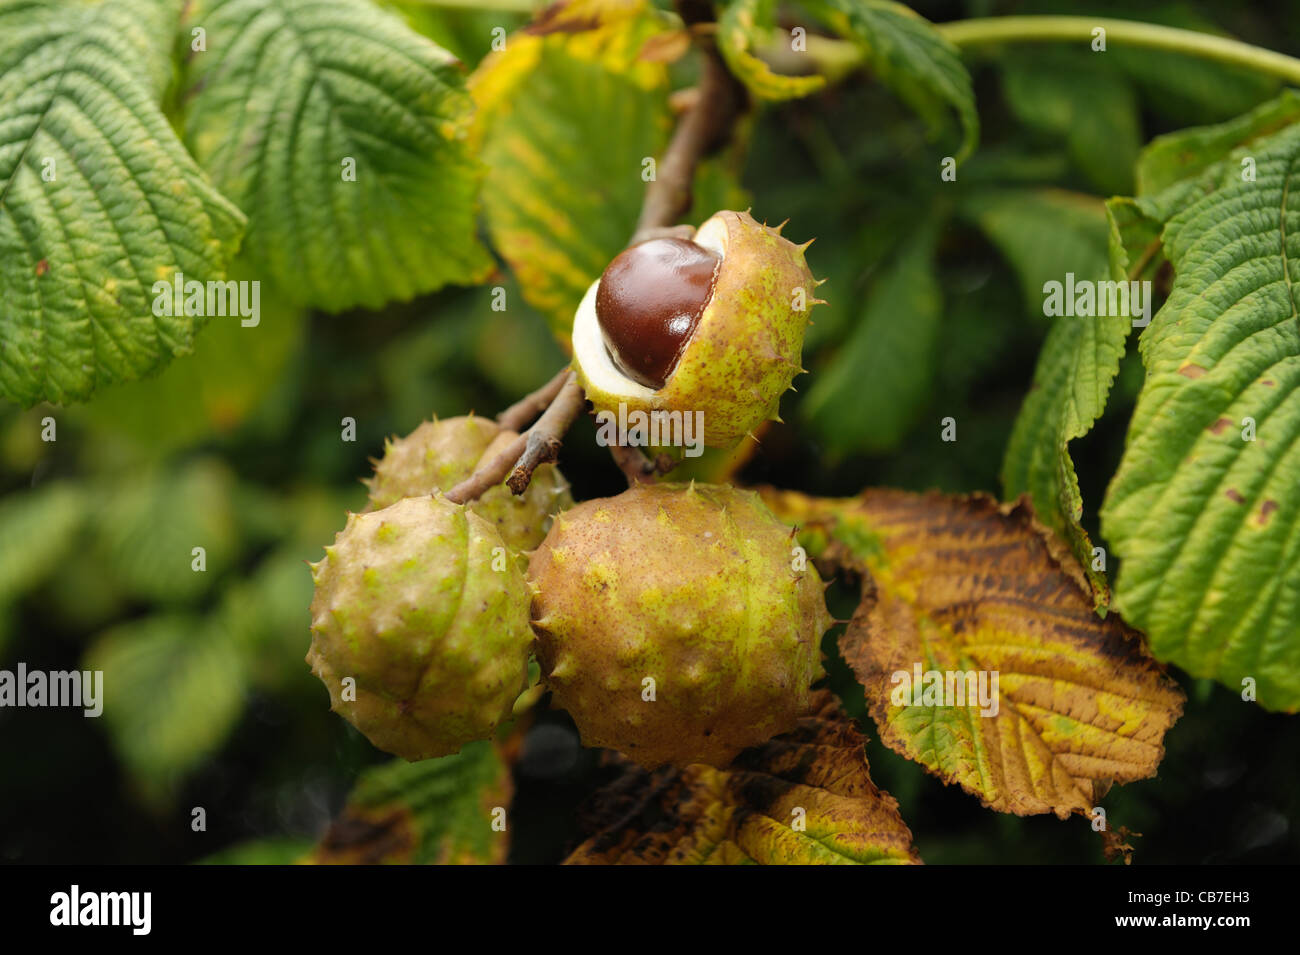 Horse chestnut tree (Aesculus hippocastanum) fruit 'conkers' on the tree, one open - Stock Image